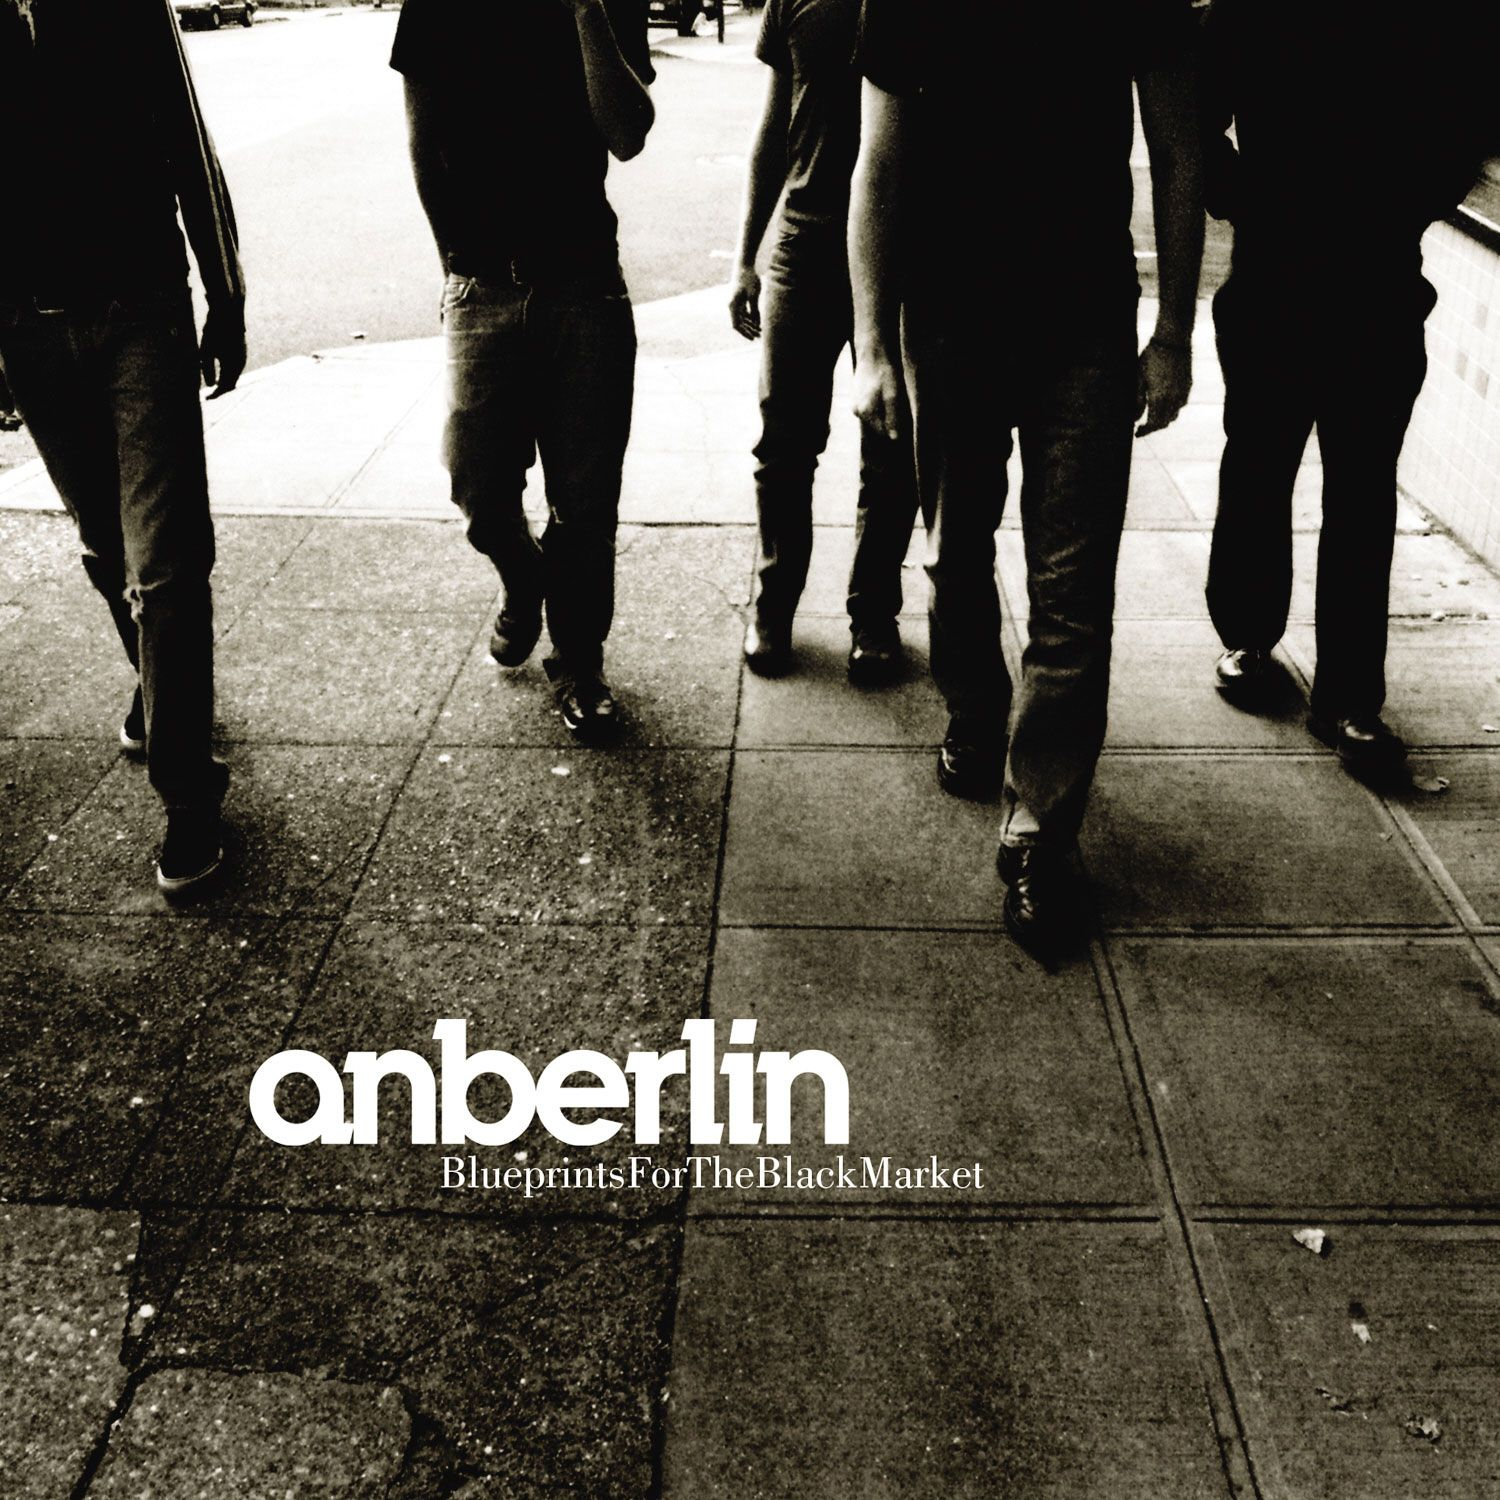 Anberlin blueprints for the black market 2003 album art pinterest anberlin blueprints for the black market 2003 malvernweather Choice Image